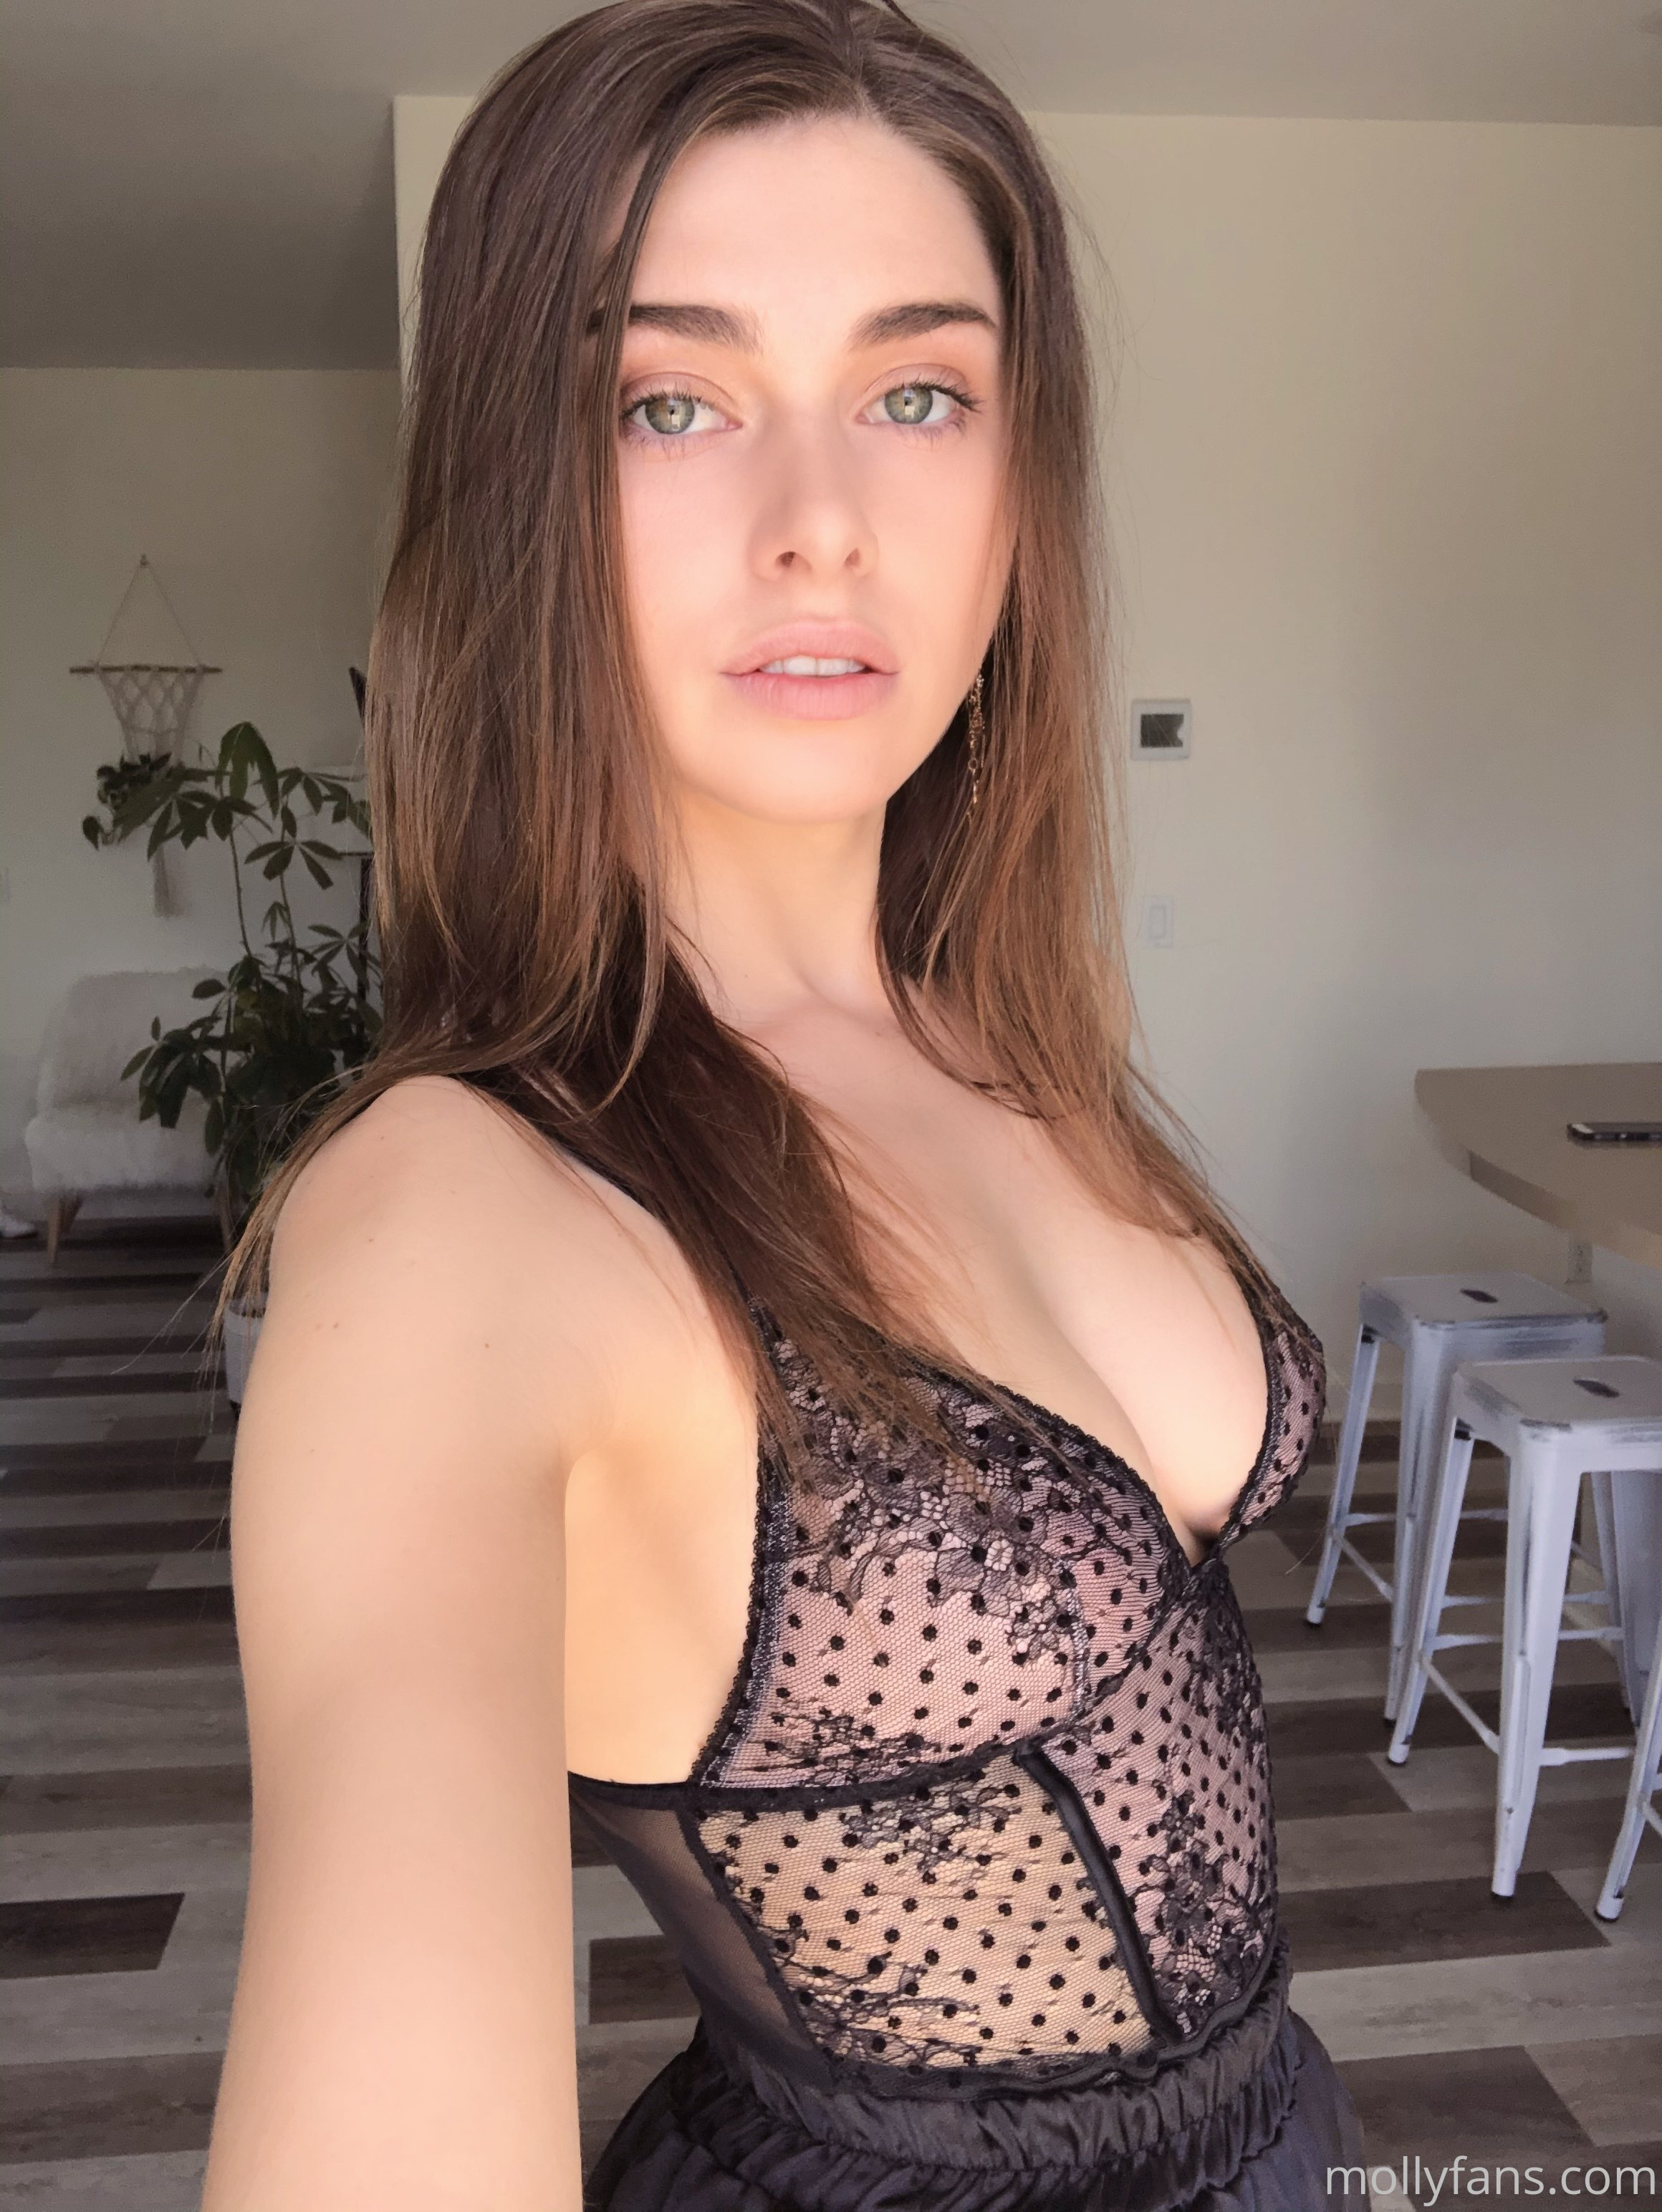 Molly X, Moremolly, Onlyfans 0071